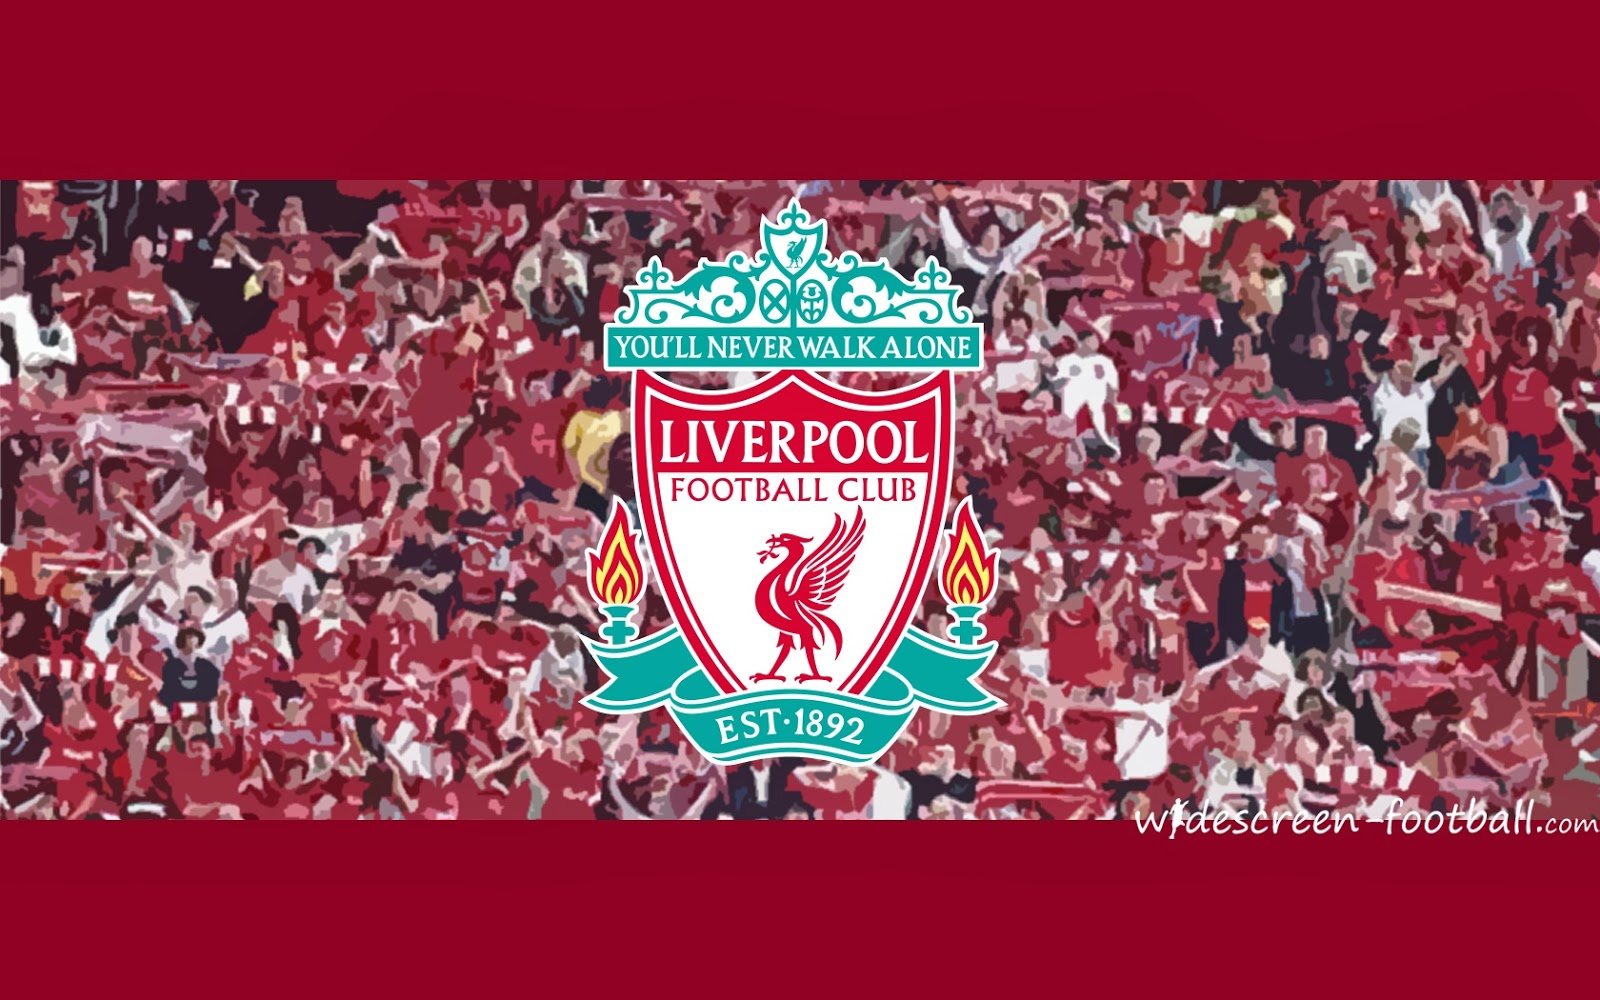 liverpool fc logo wallpaper 2014 collection